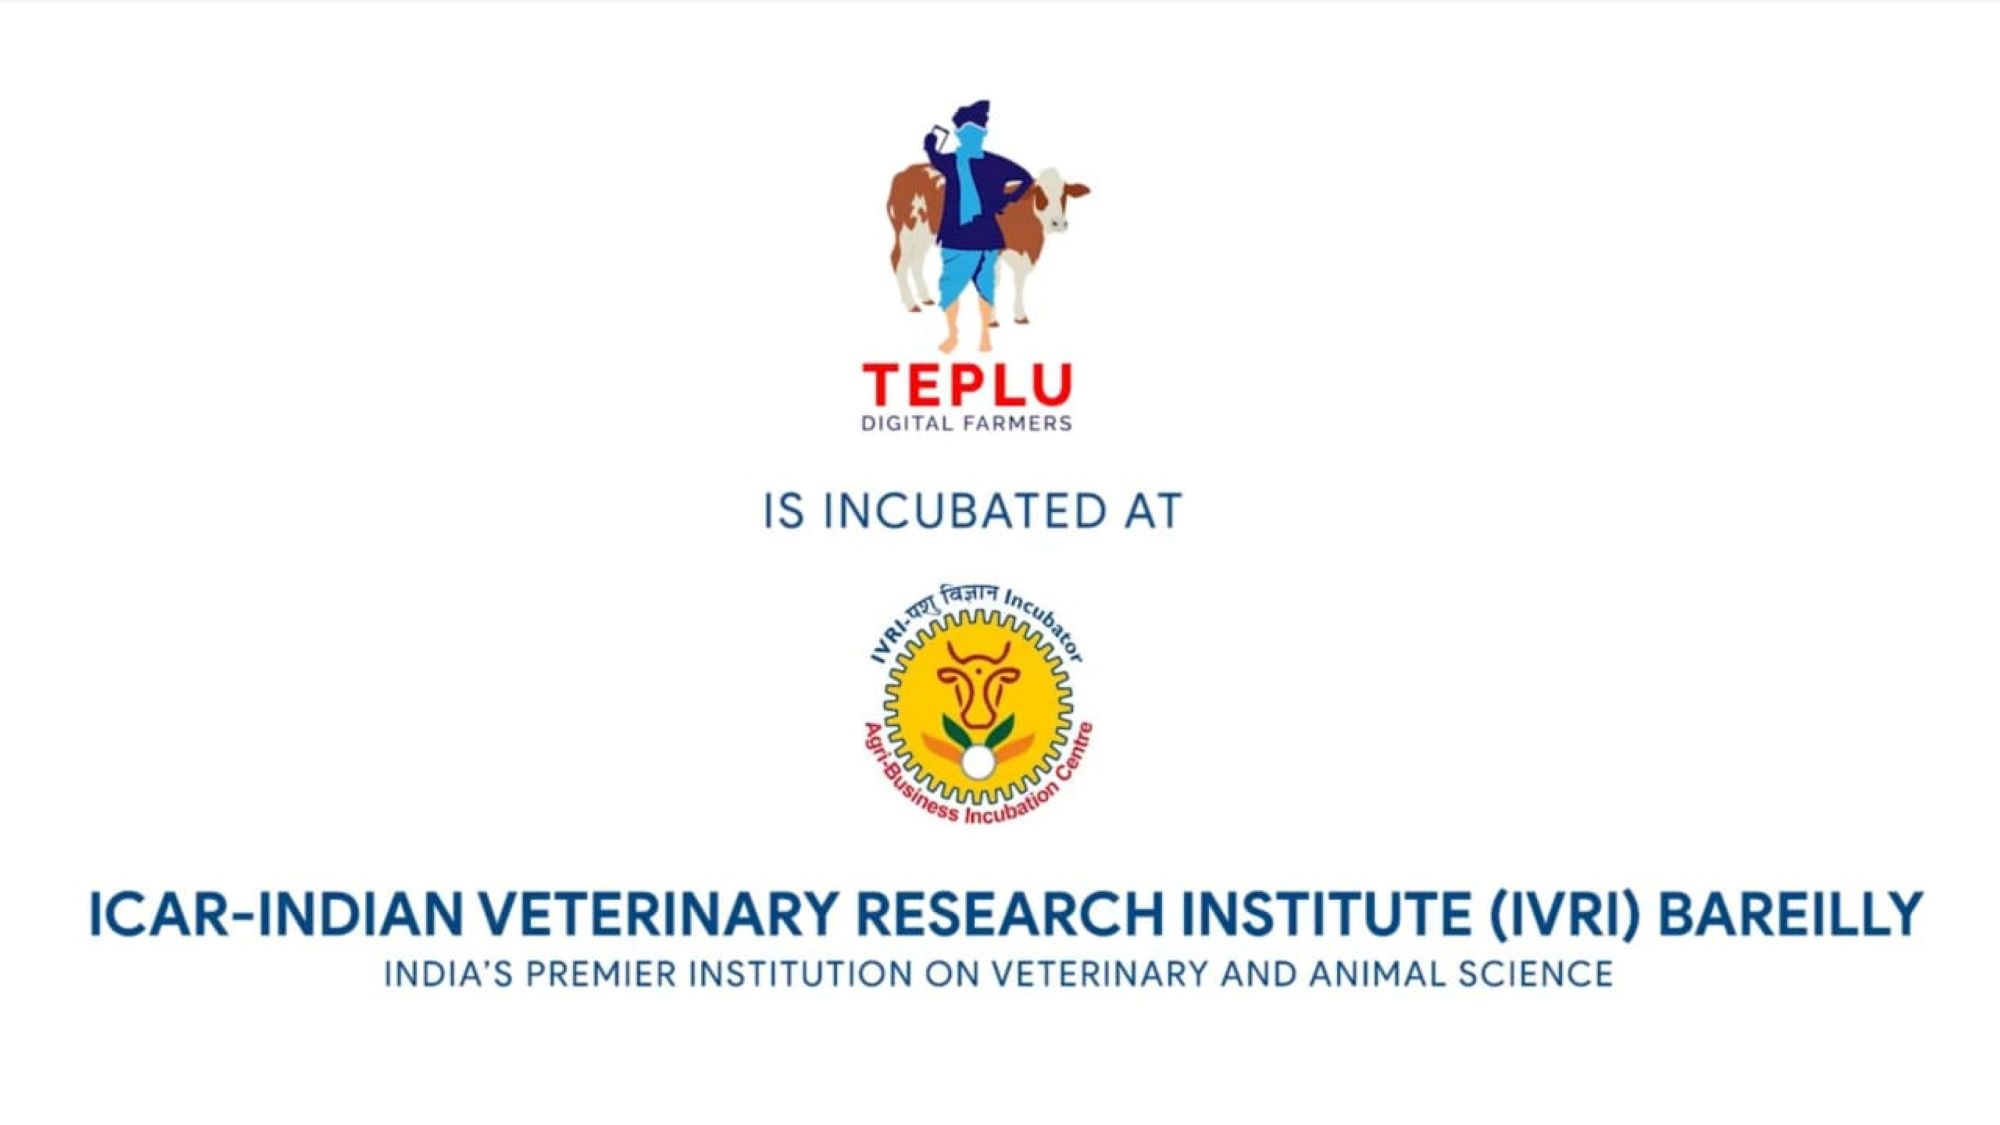 Teplu trains on clean milk in dairy farming. Incubated by IVRI and offers best course for dairy farm